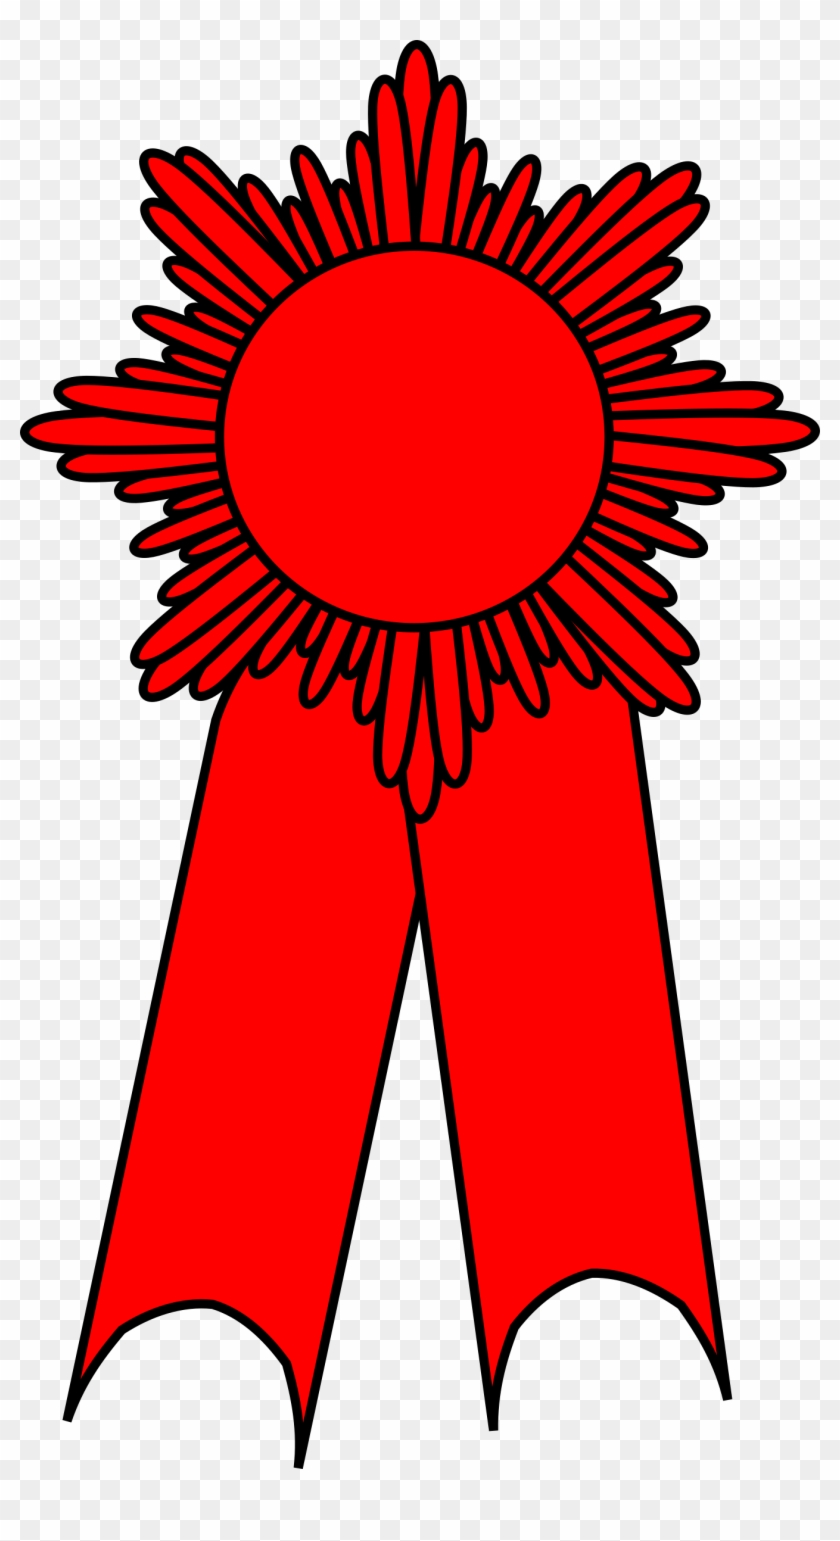 Blue Ribbon Computer Icons Clip Art - Red Ribbon Award Clipart Png #60691